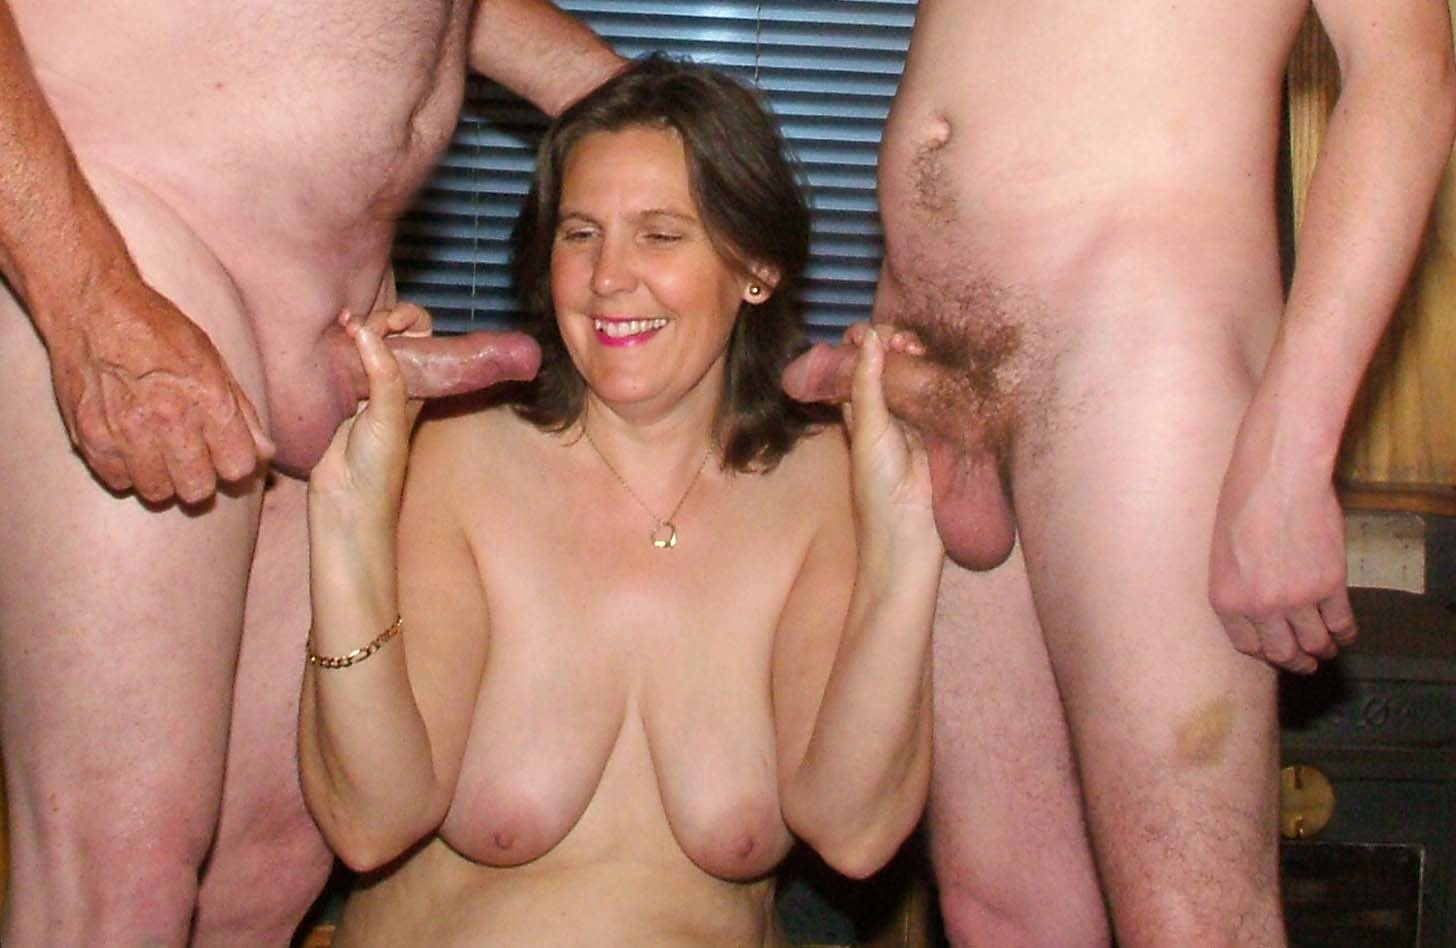 James wife likes two cocks